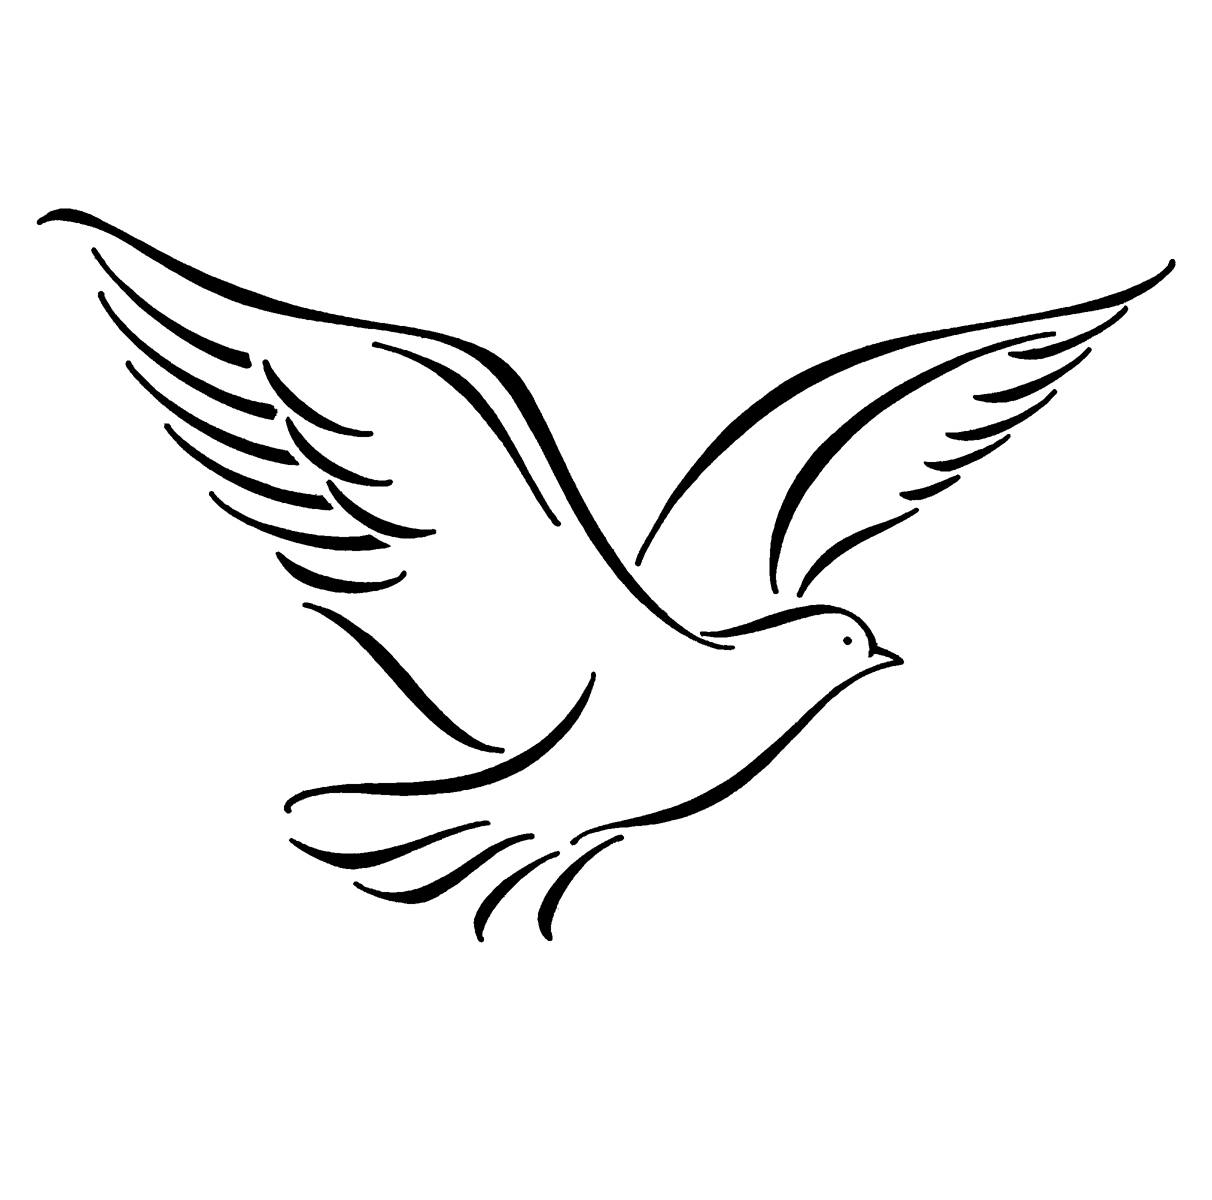 24 Dove Line Drawing Free Cliparts That You Can Download To You